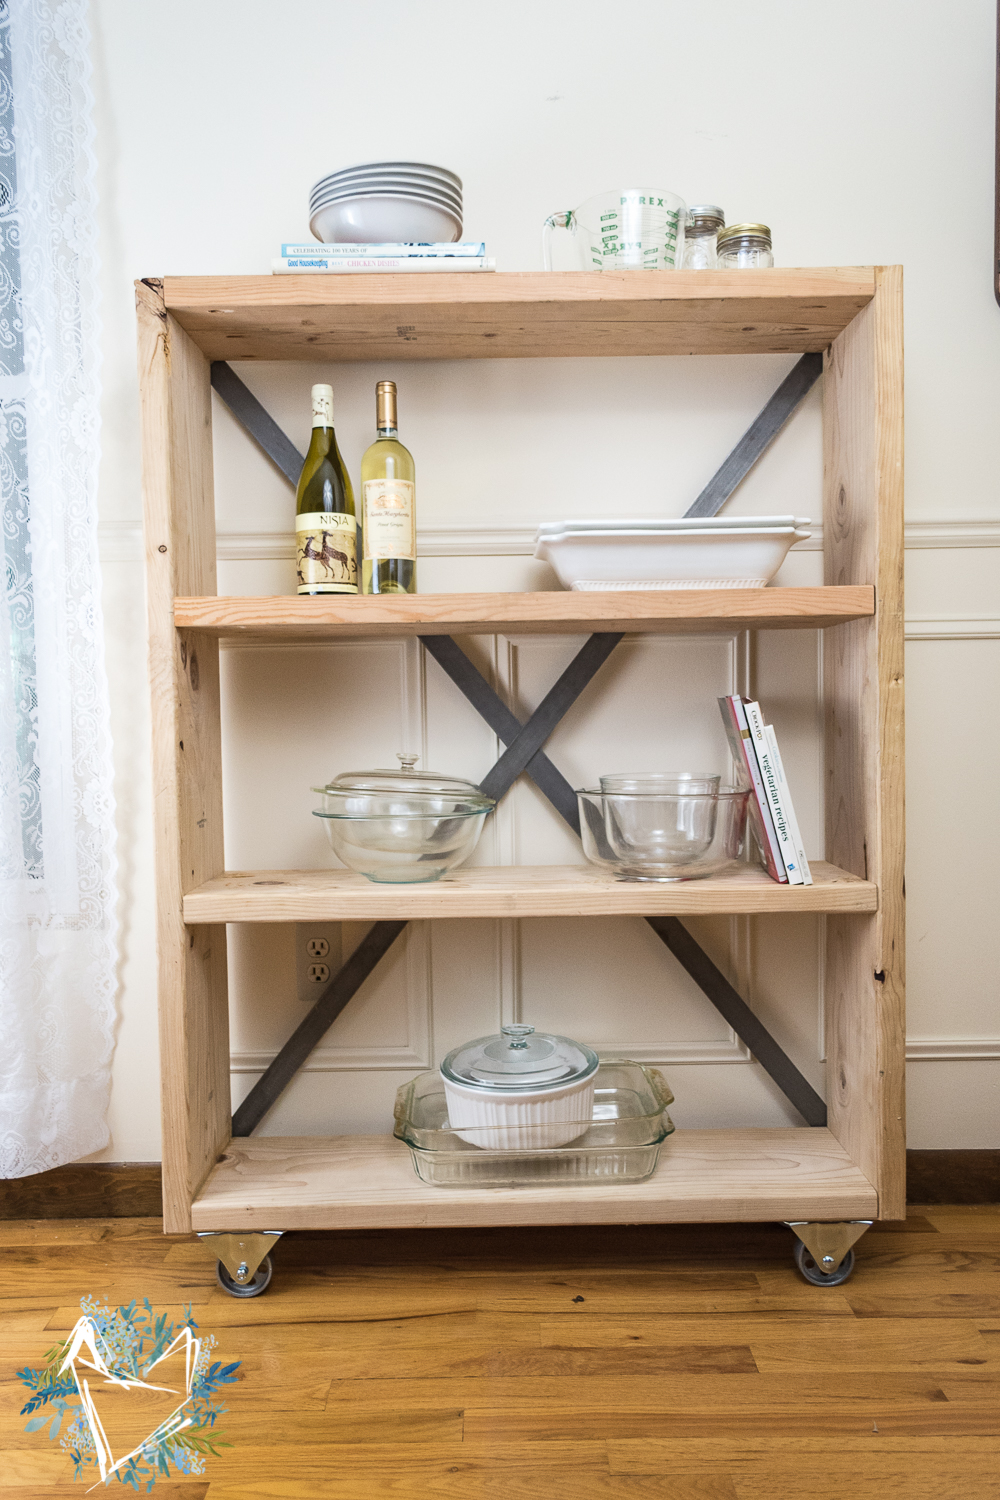 diy-industrial-famhouse-pantry-shelf-17